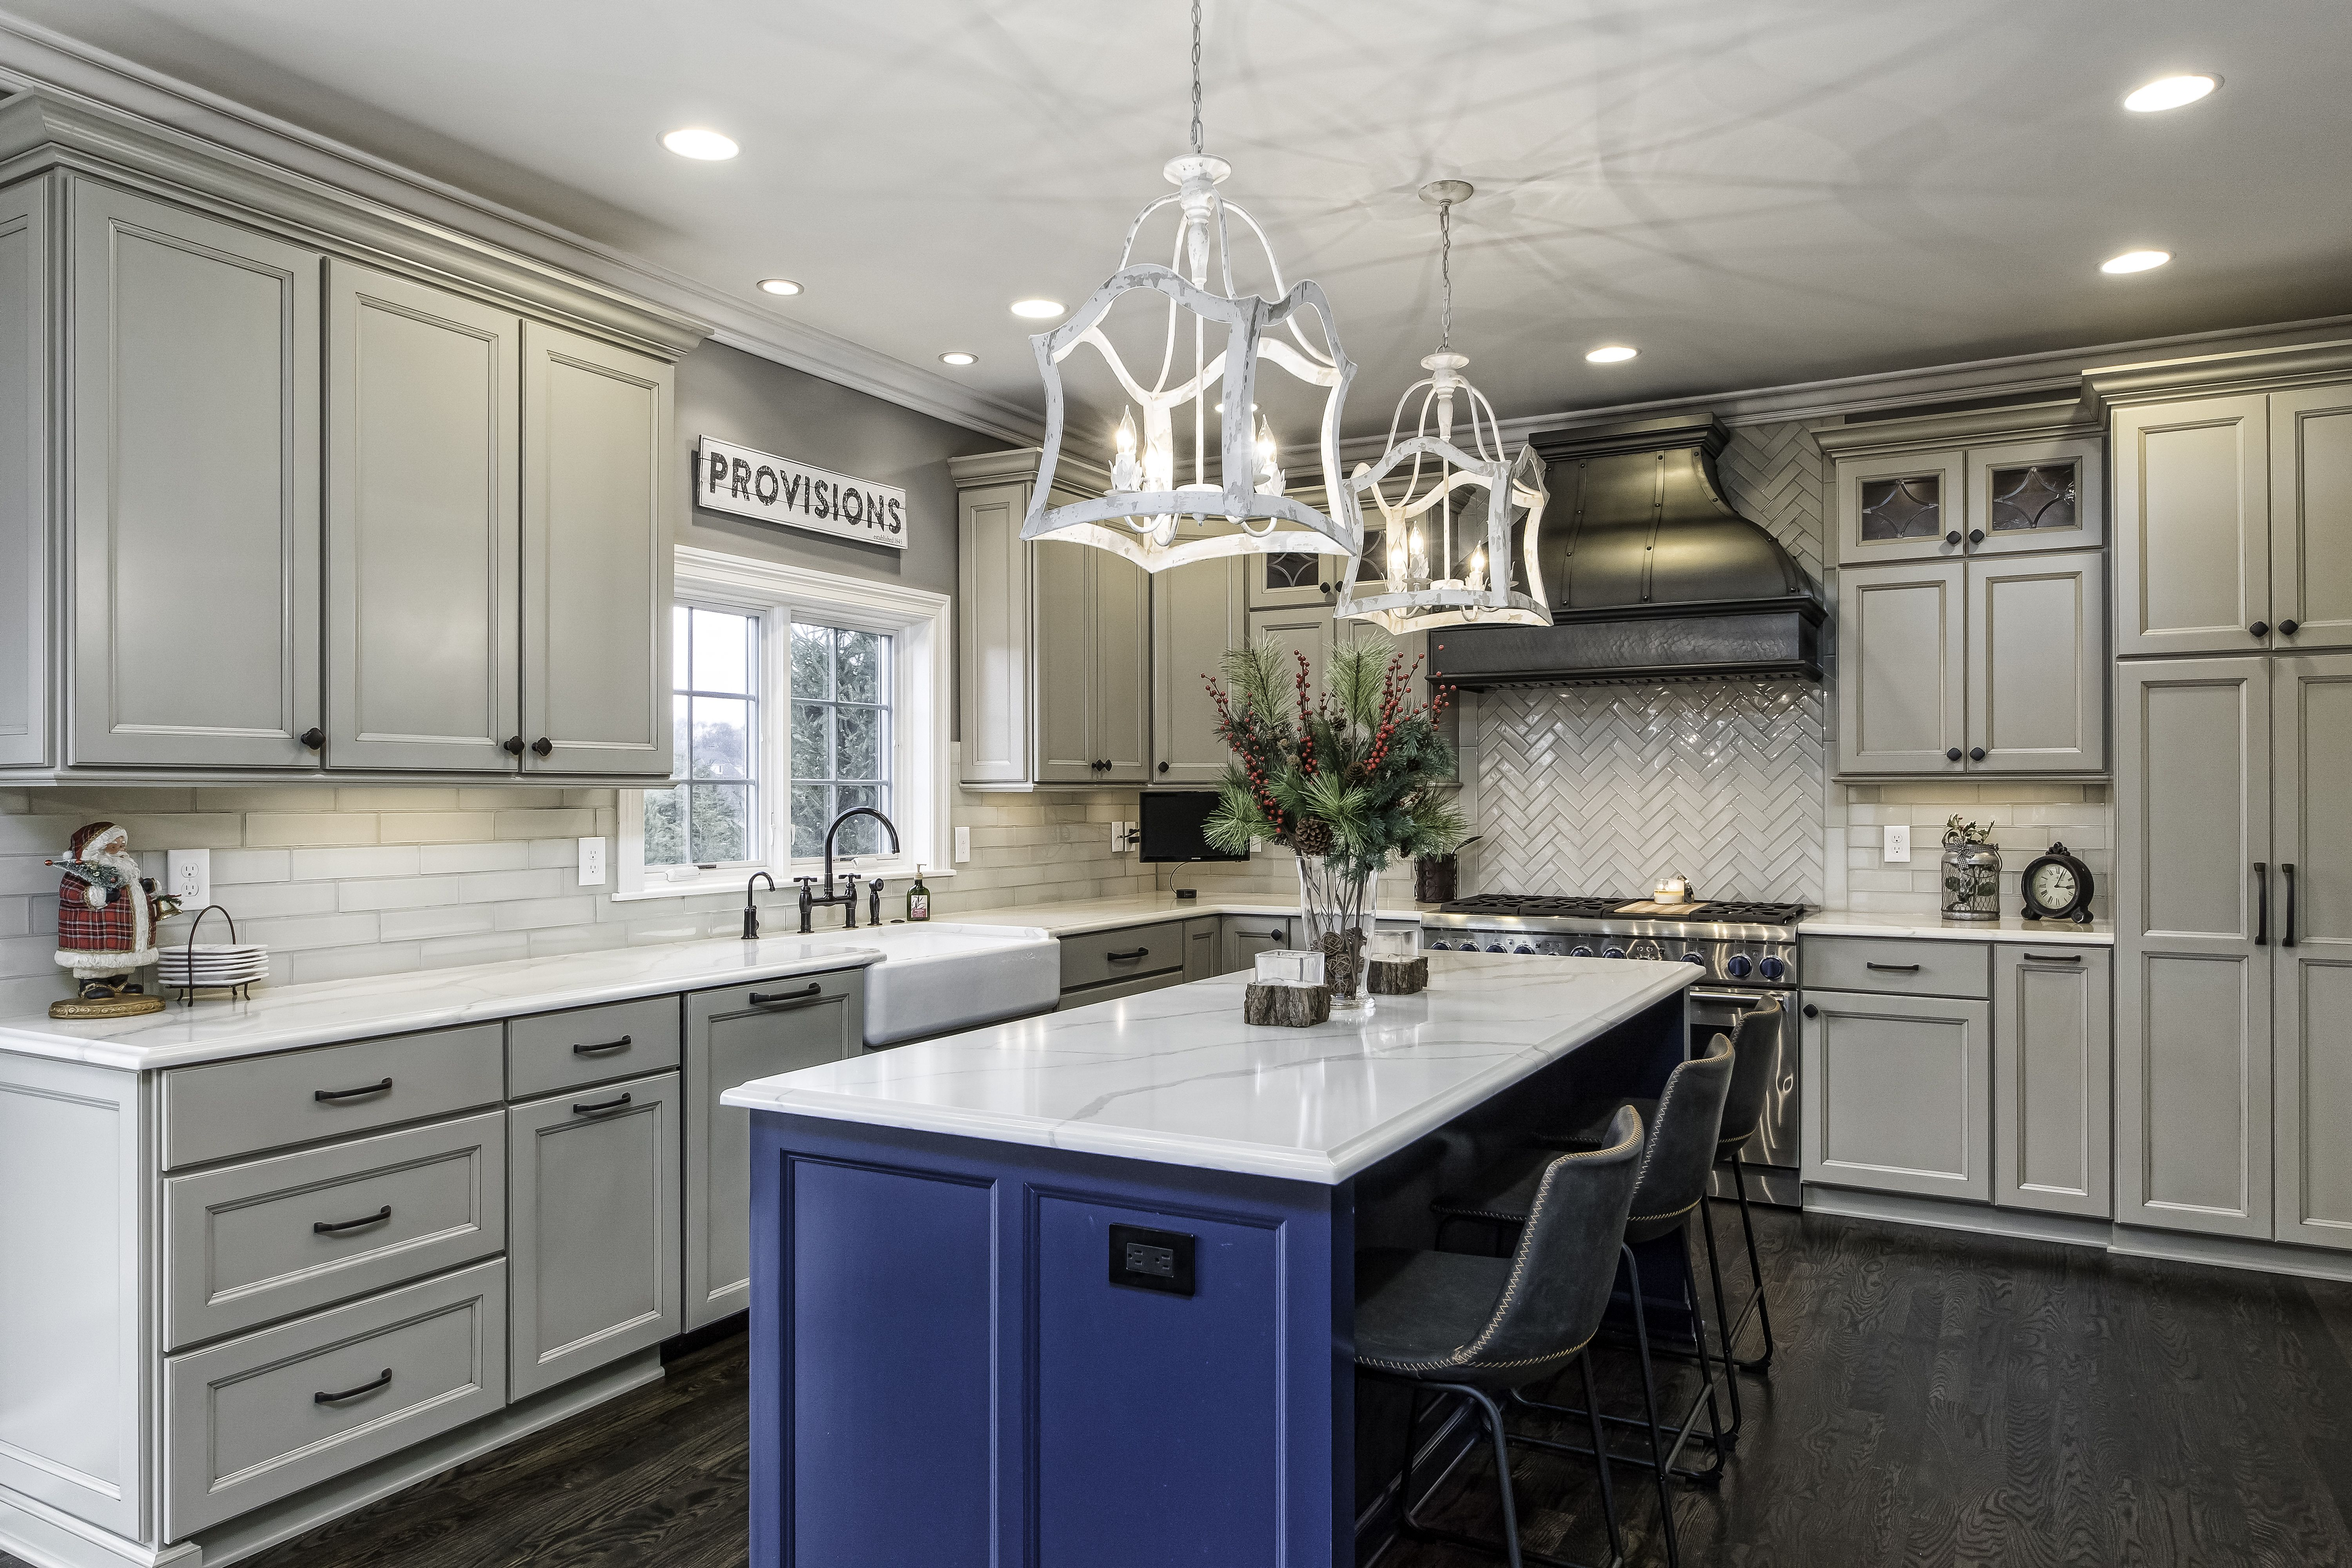 Two Toned Kitchens Are Very Popular Right Now We See A Lot Of Perimeters Being An Opposing Color From The Island When You Are Dreaming Two Tone Kitchen Kitchen Home Decor